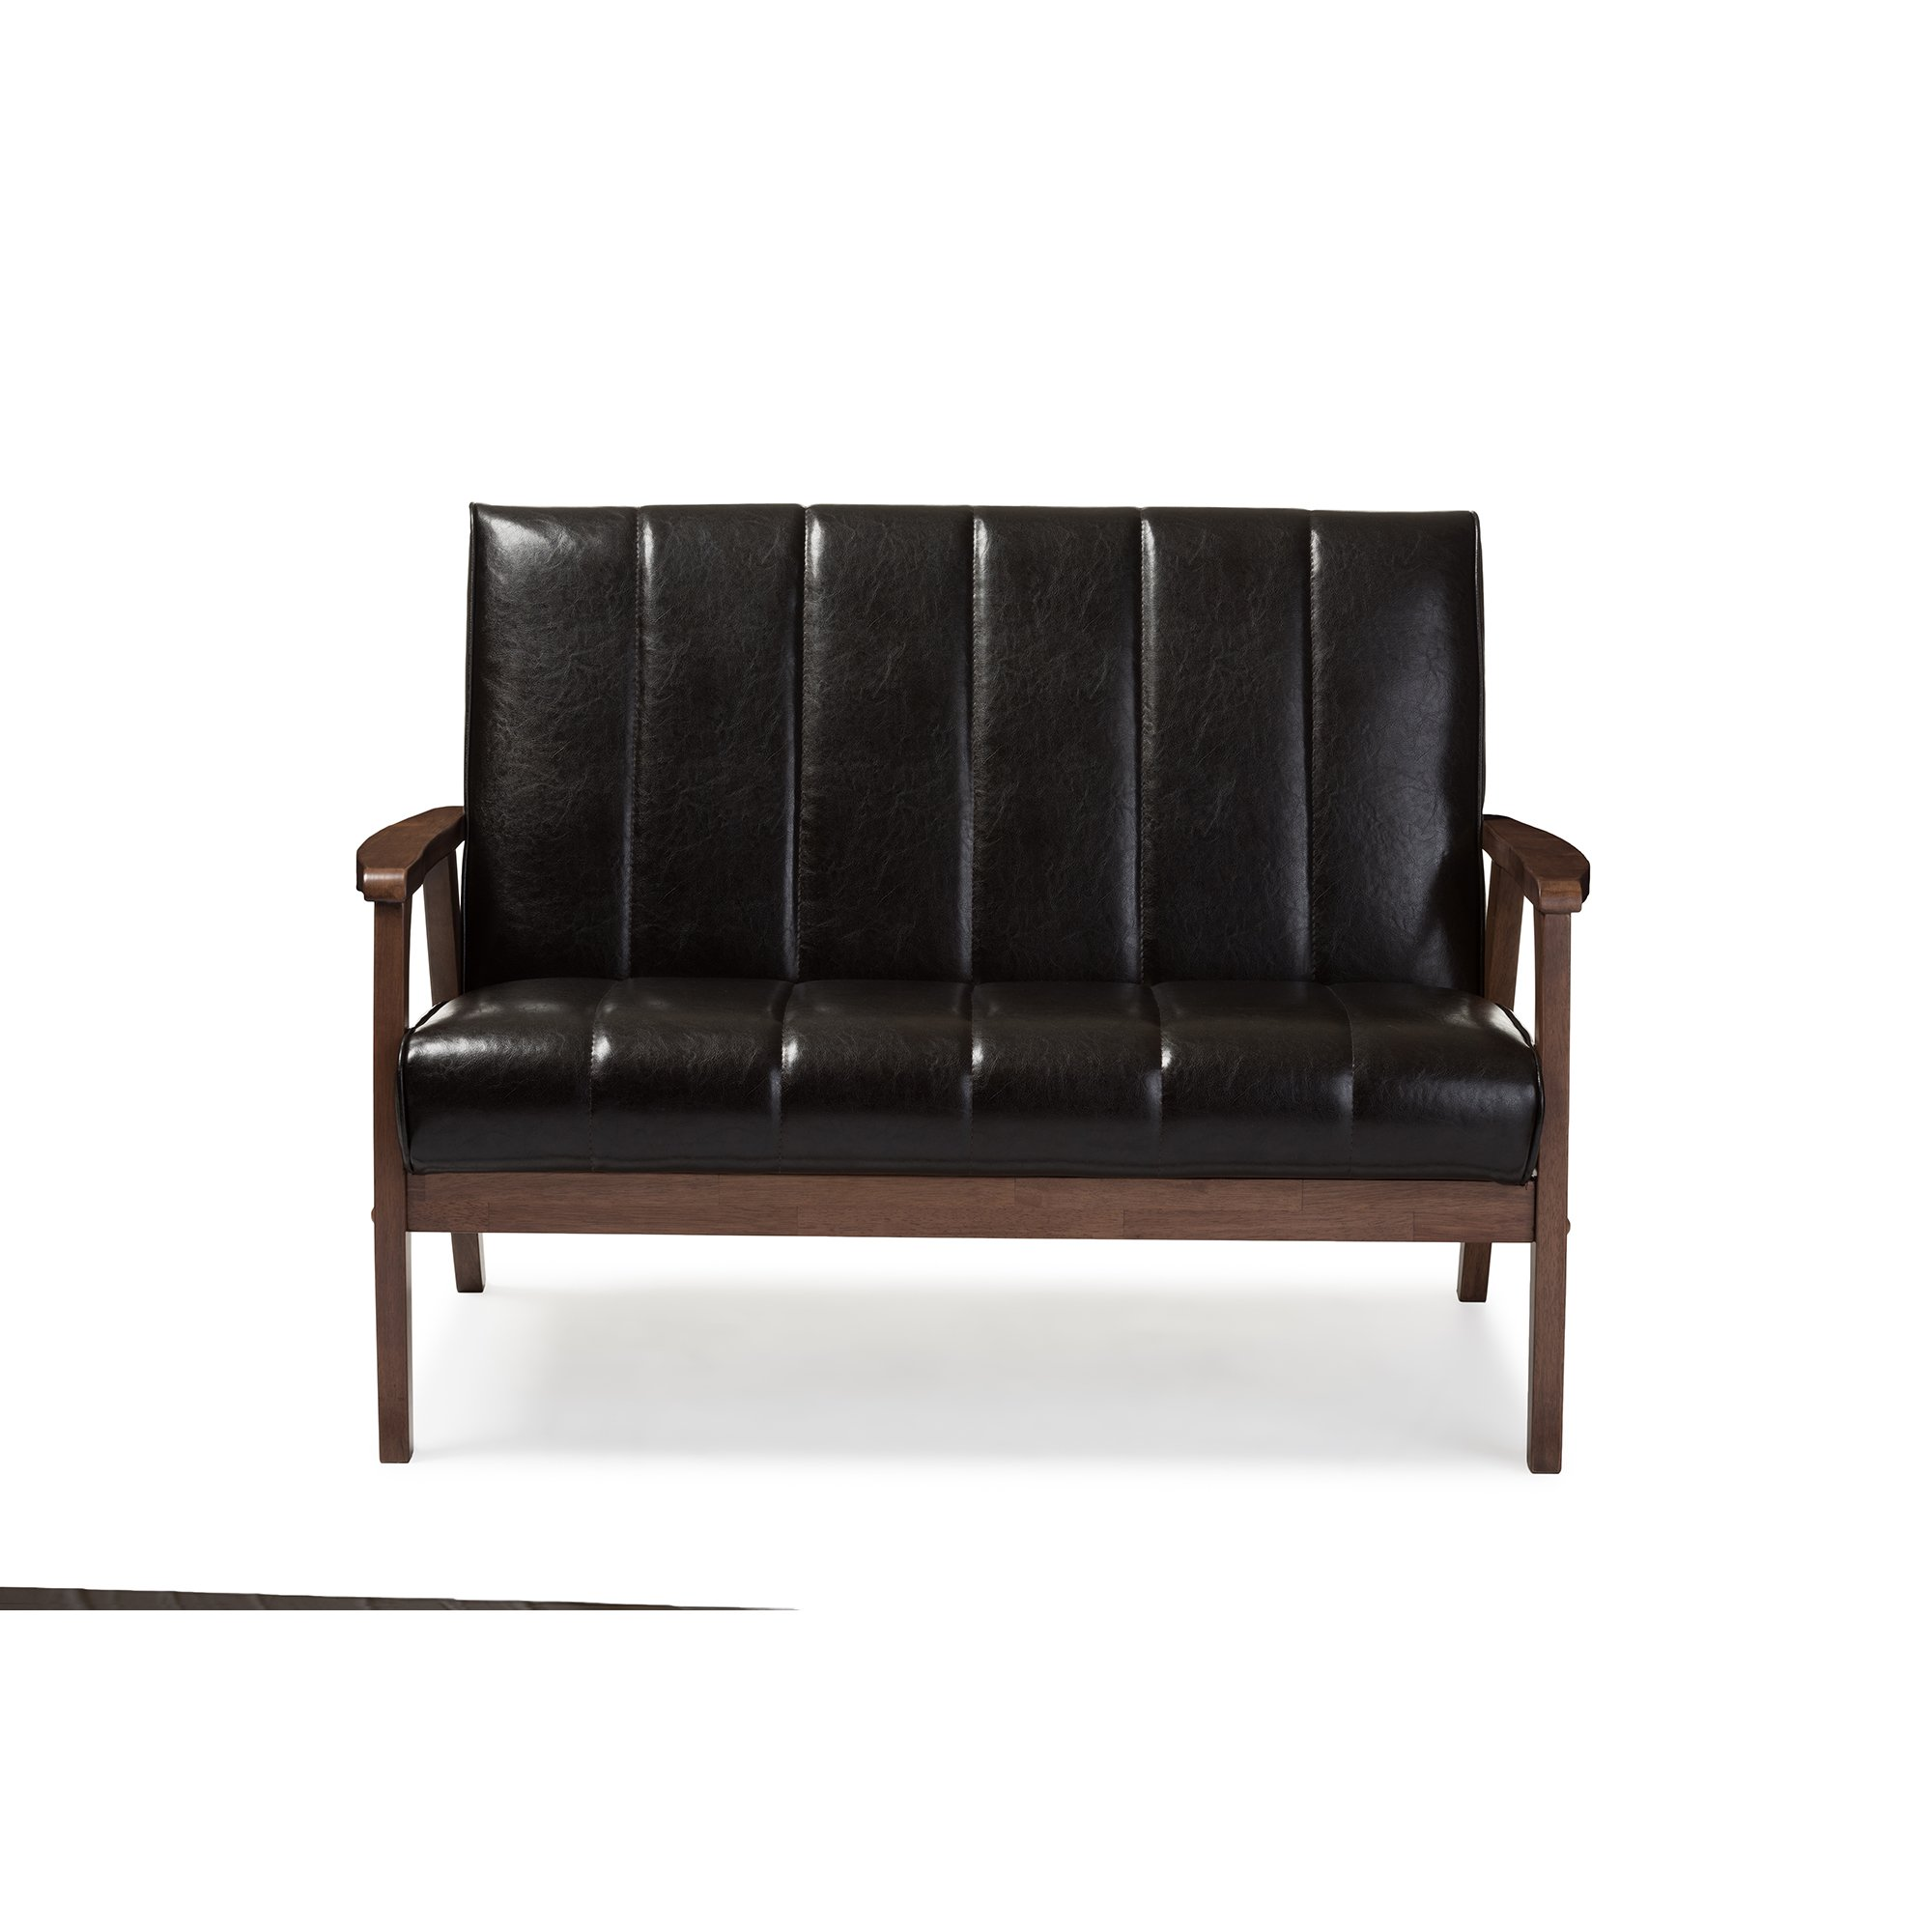 Baxton Studio Nikko Mid-century Modern Scandinavian Style Dark Brown Faux Leather Wooden 2-Seater Loveseat by Baxton Furniture Studios (Image #2)